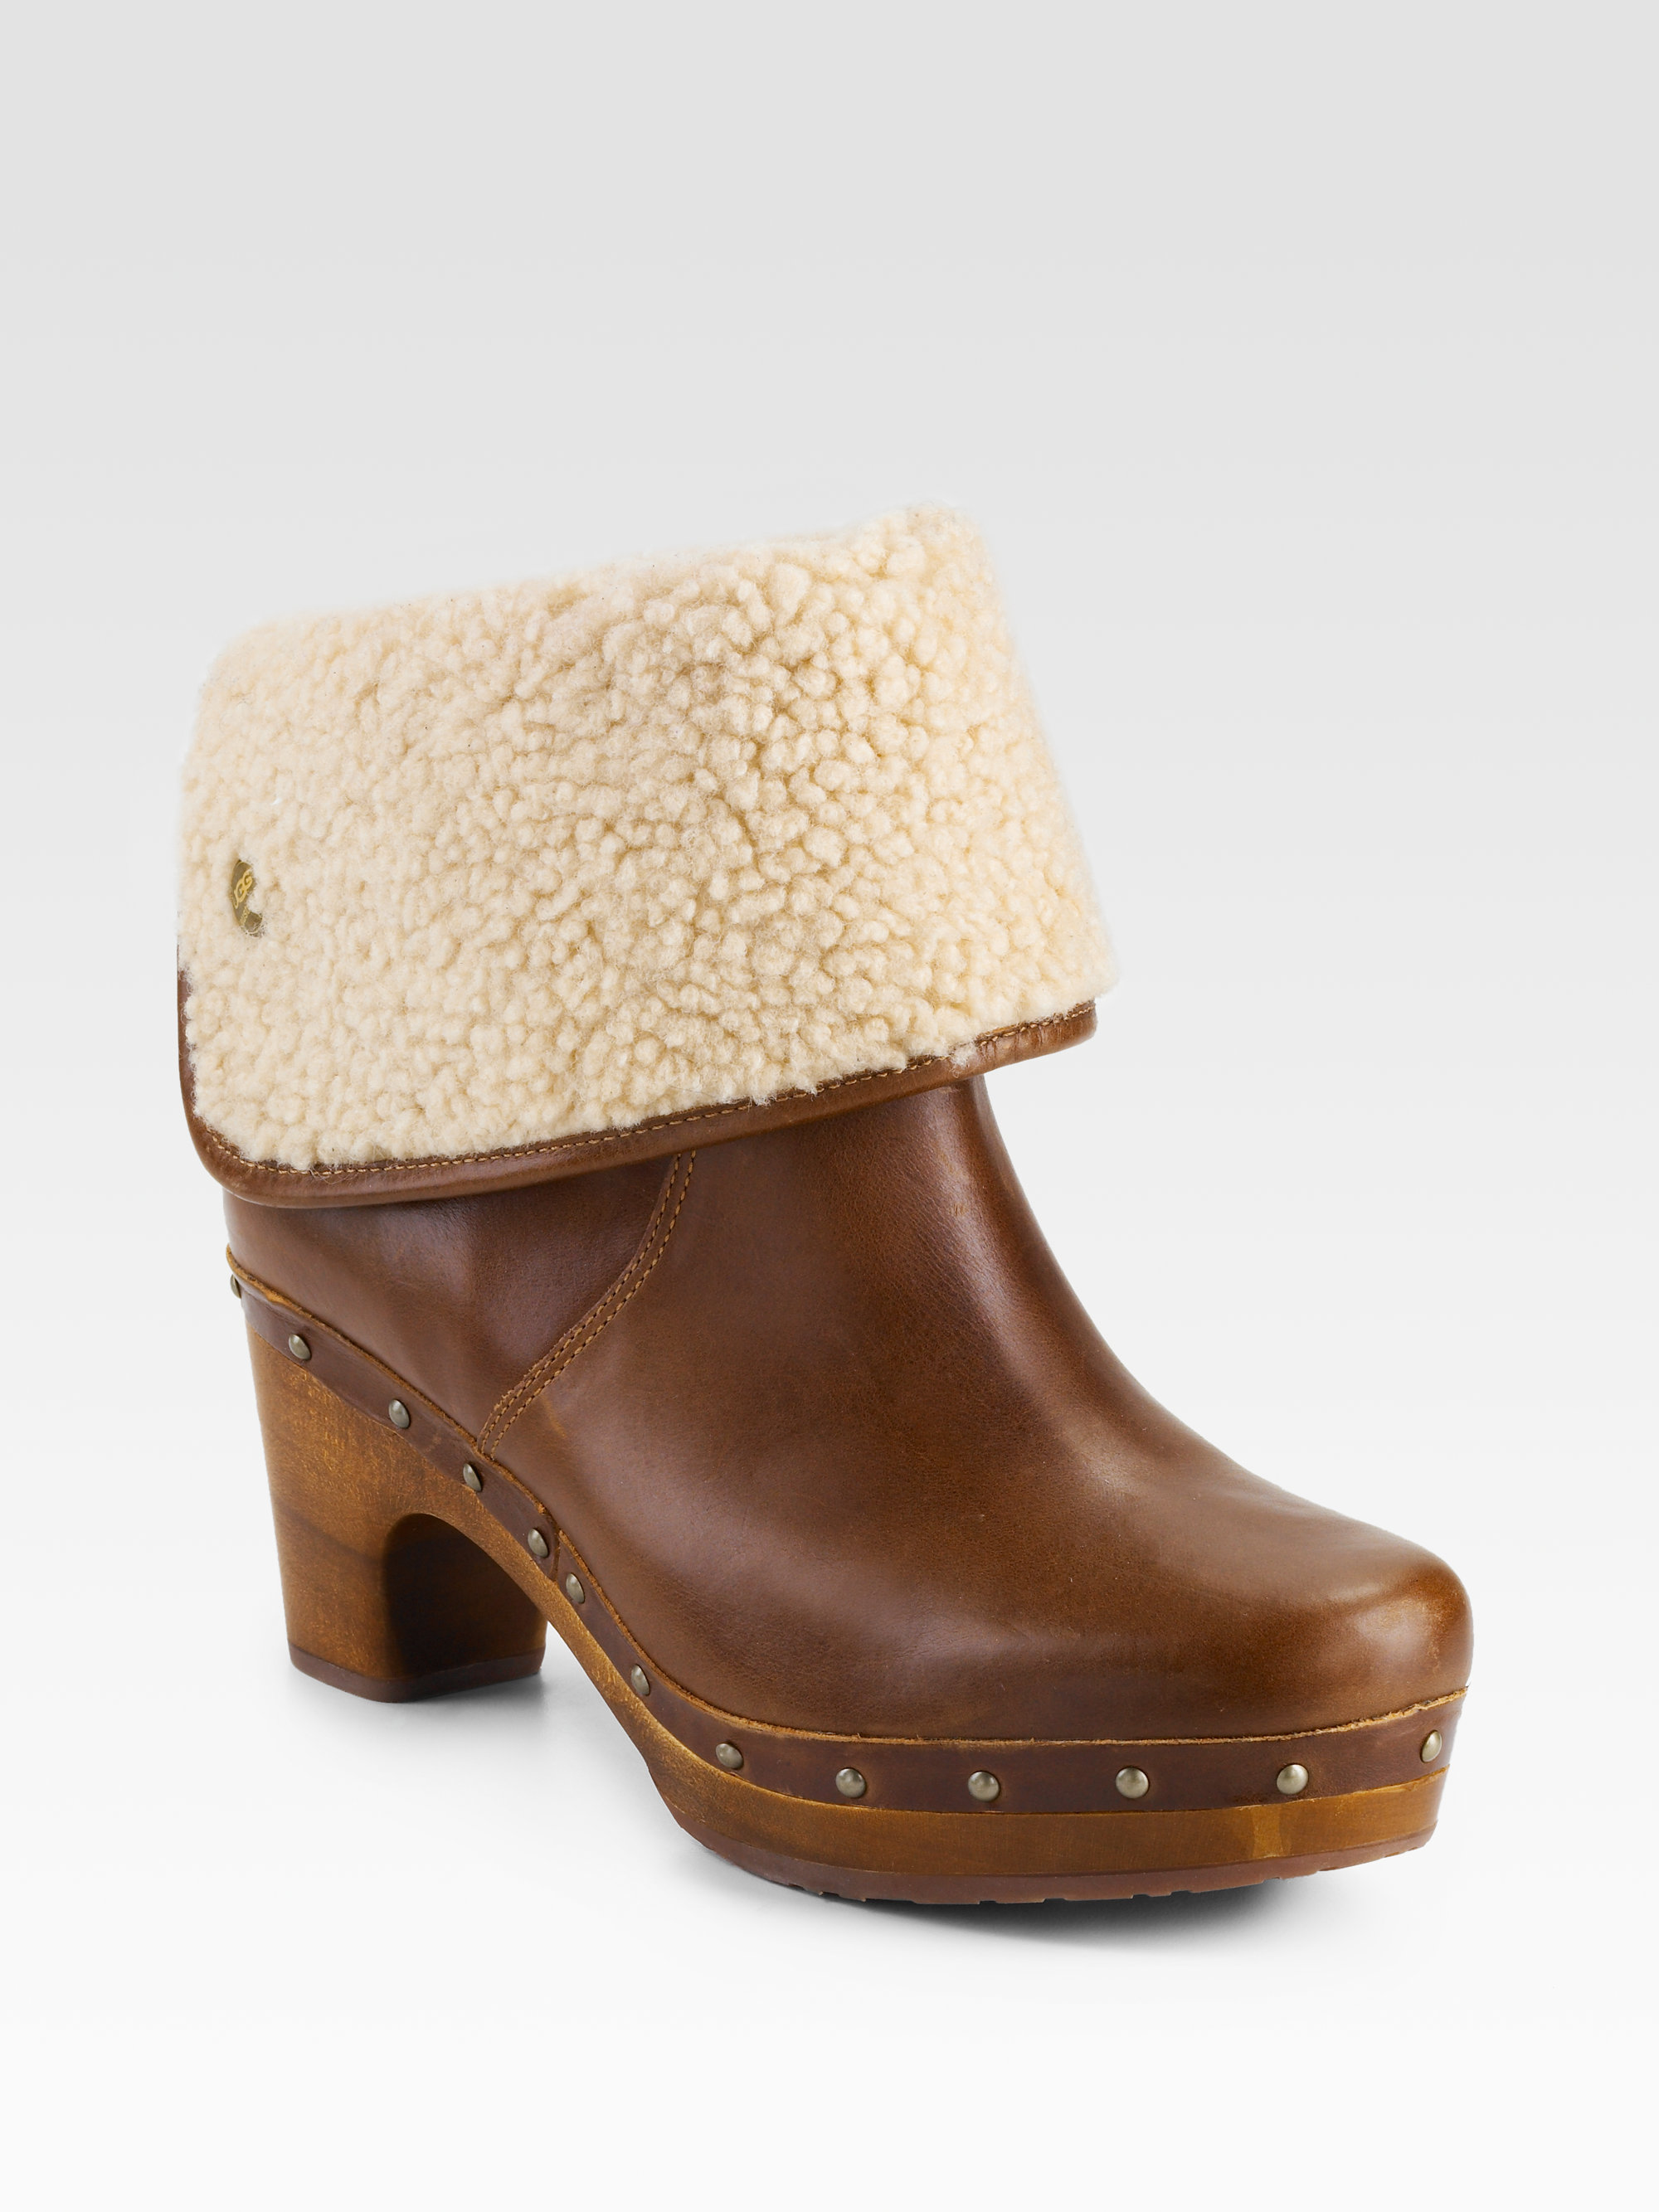 079dd9cbb50 UGG Brown Lynnea Clog Shearlinglined Ankle Boots